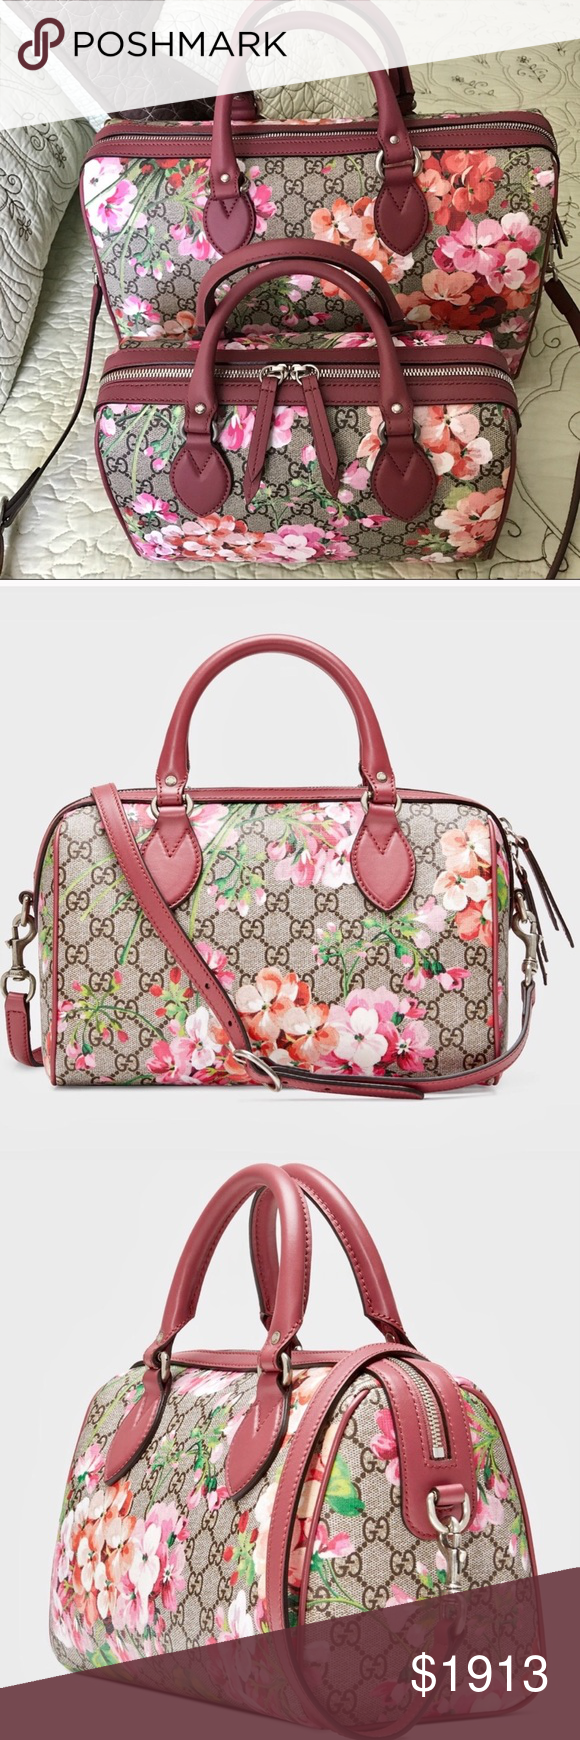 fde271719a0990 GUCCI™ Blooms 🌸SMALL Boston 👜 ONE size SMALL GUCCI™ Blooms 🌸print ...